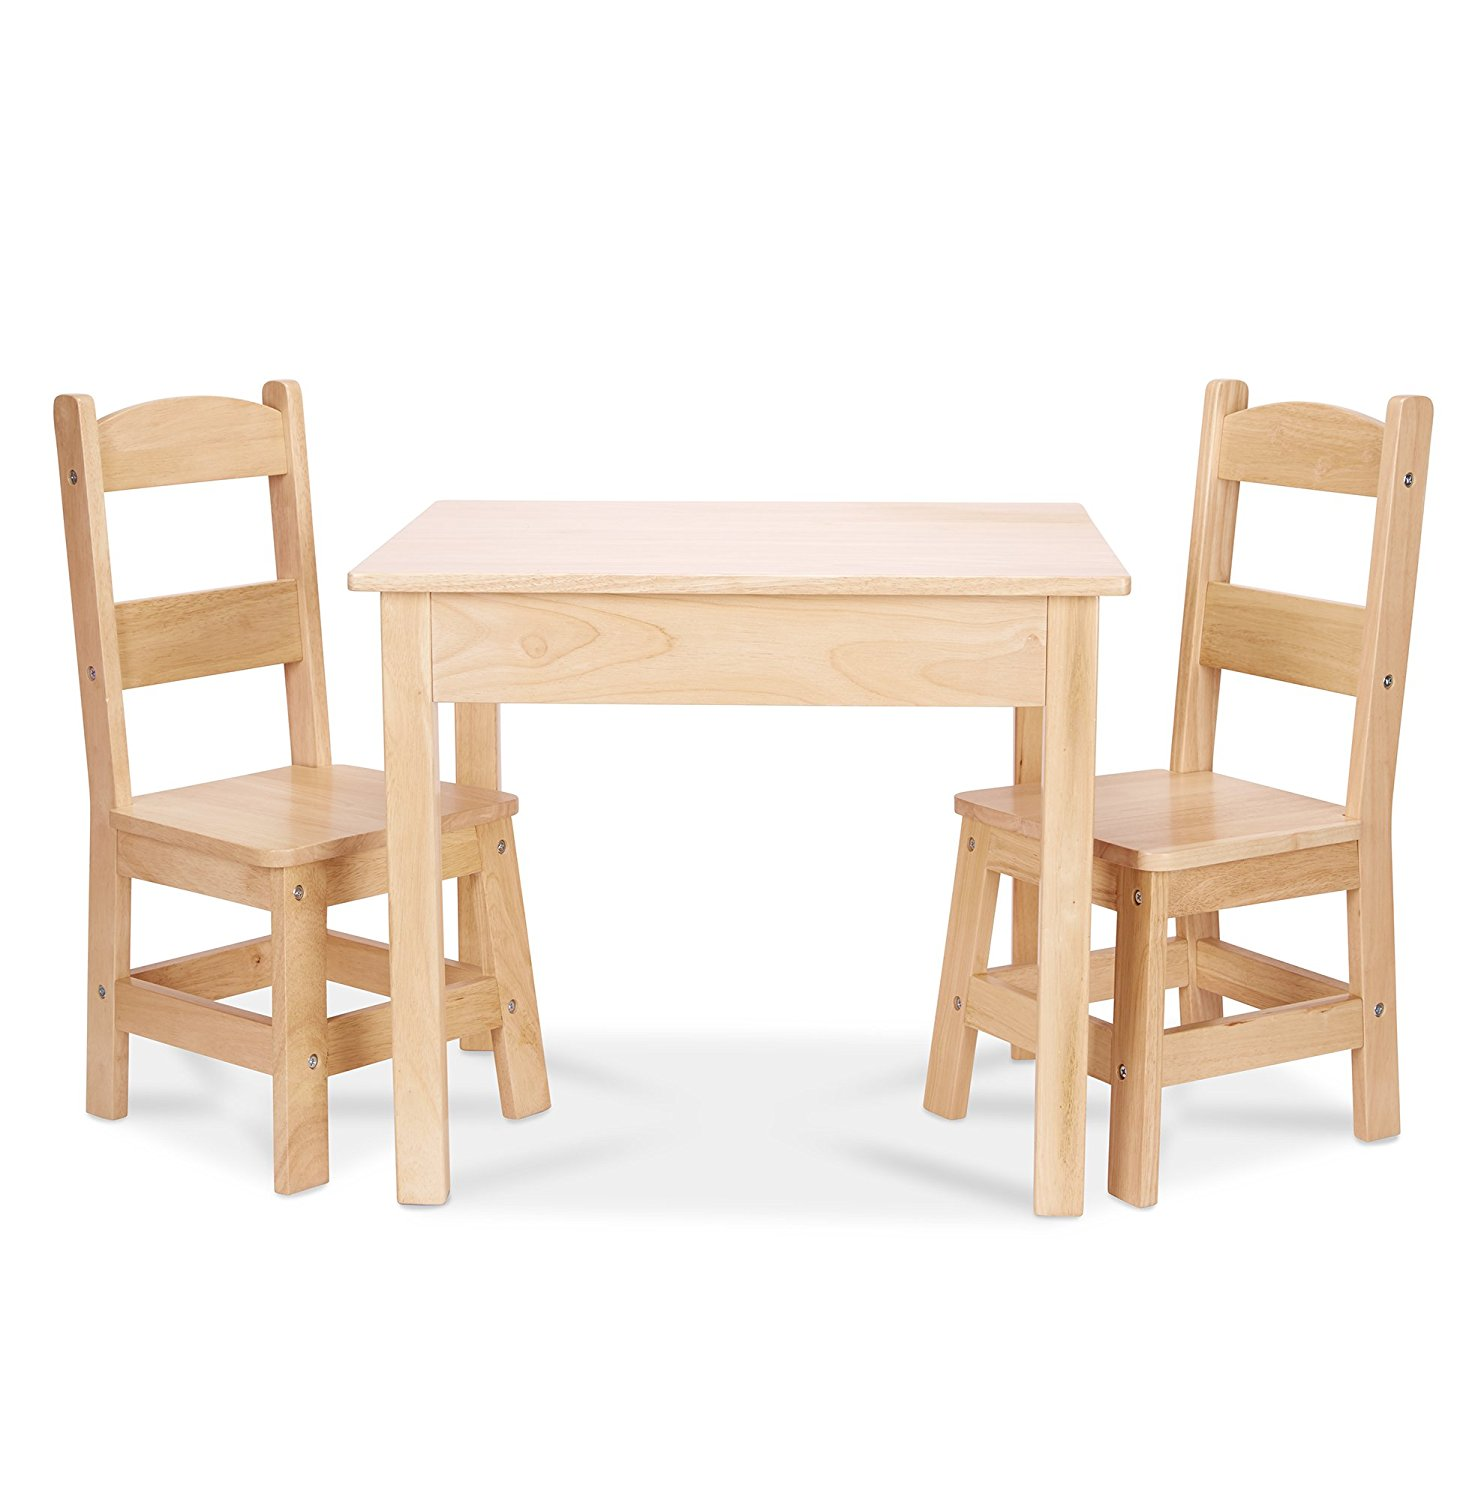 Melissa & Doug Solid Wood Table & Chairs